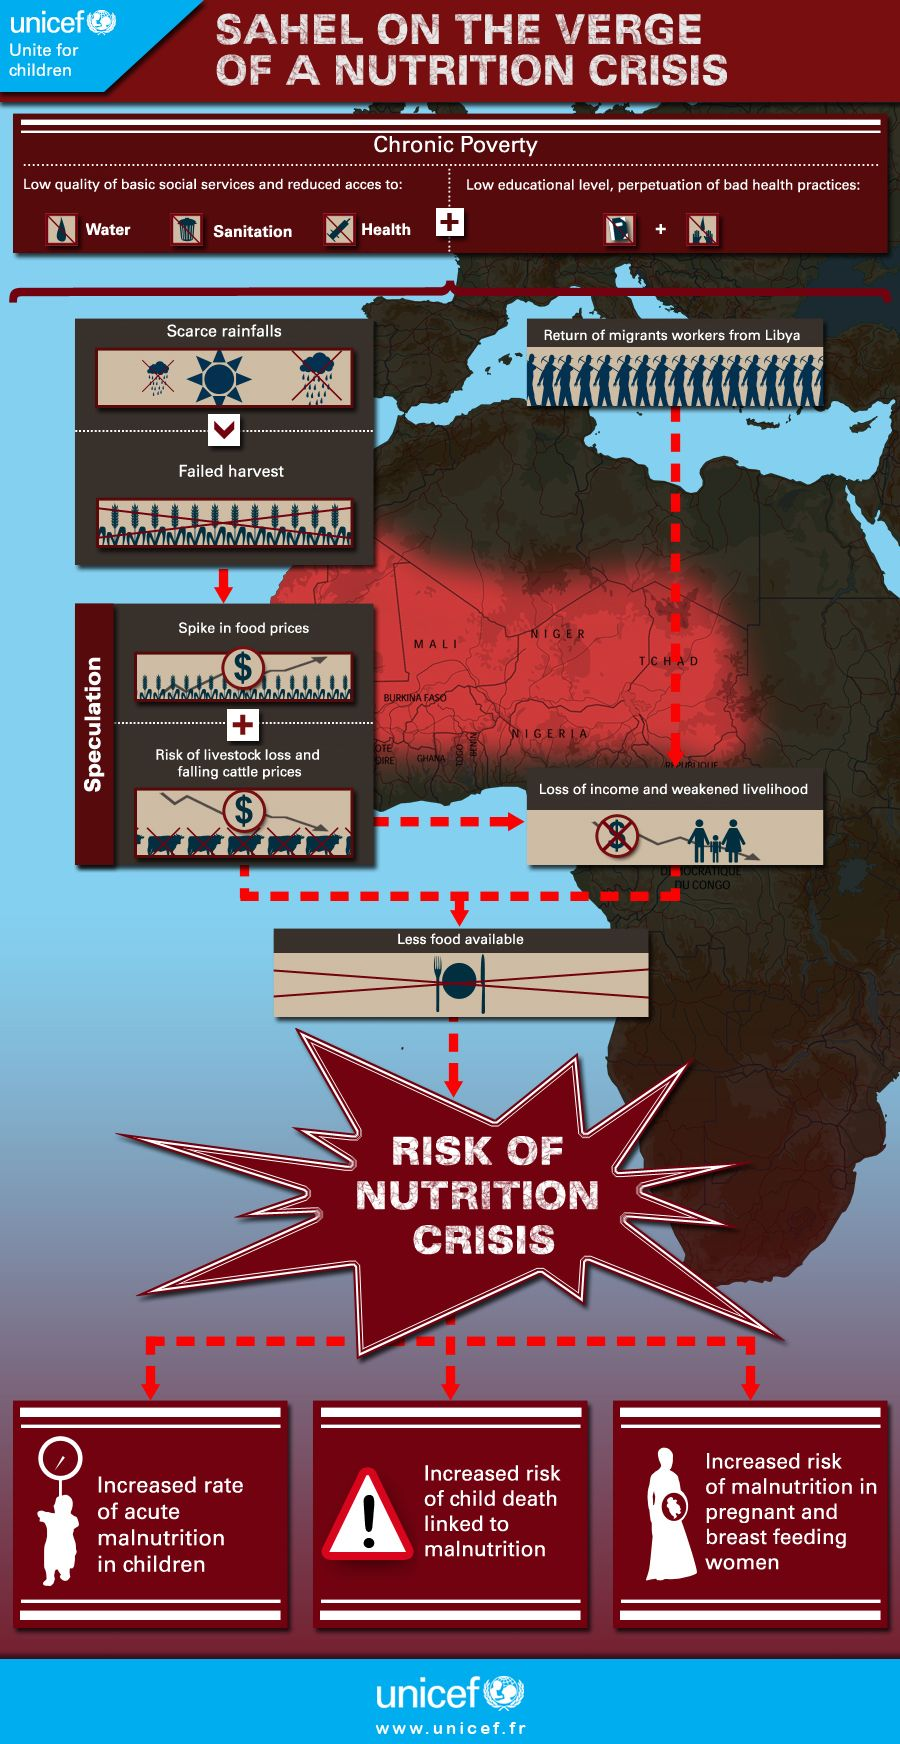 What causes the nutrition crisis in the Sahel? Take a look at this infographic and Re-Pin it on your board to help inform others.